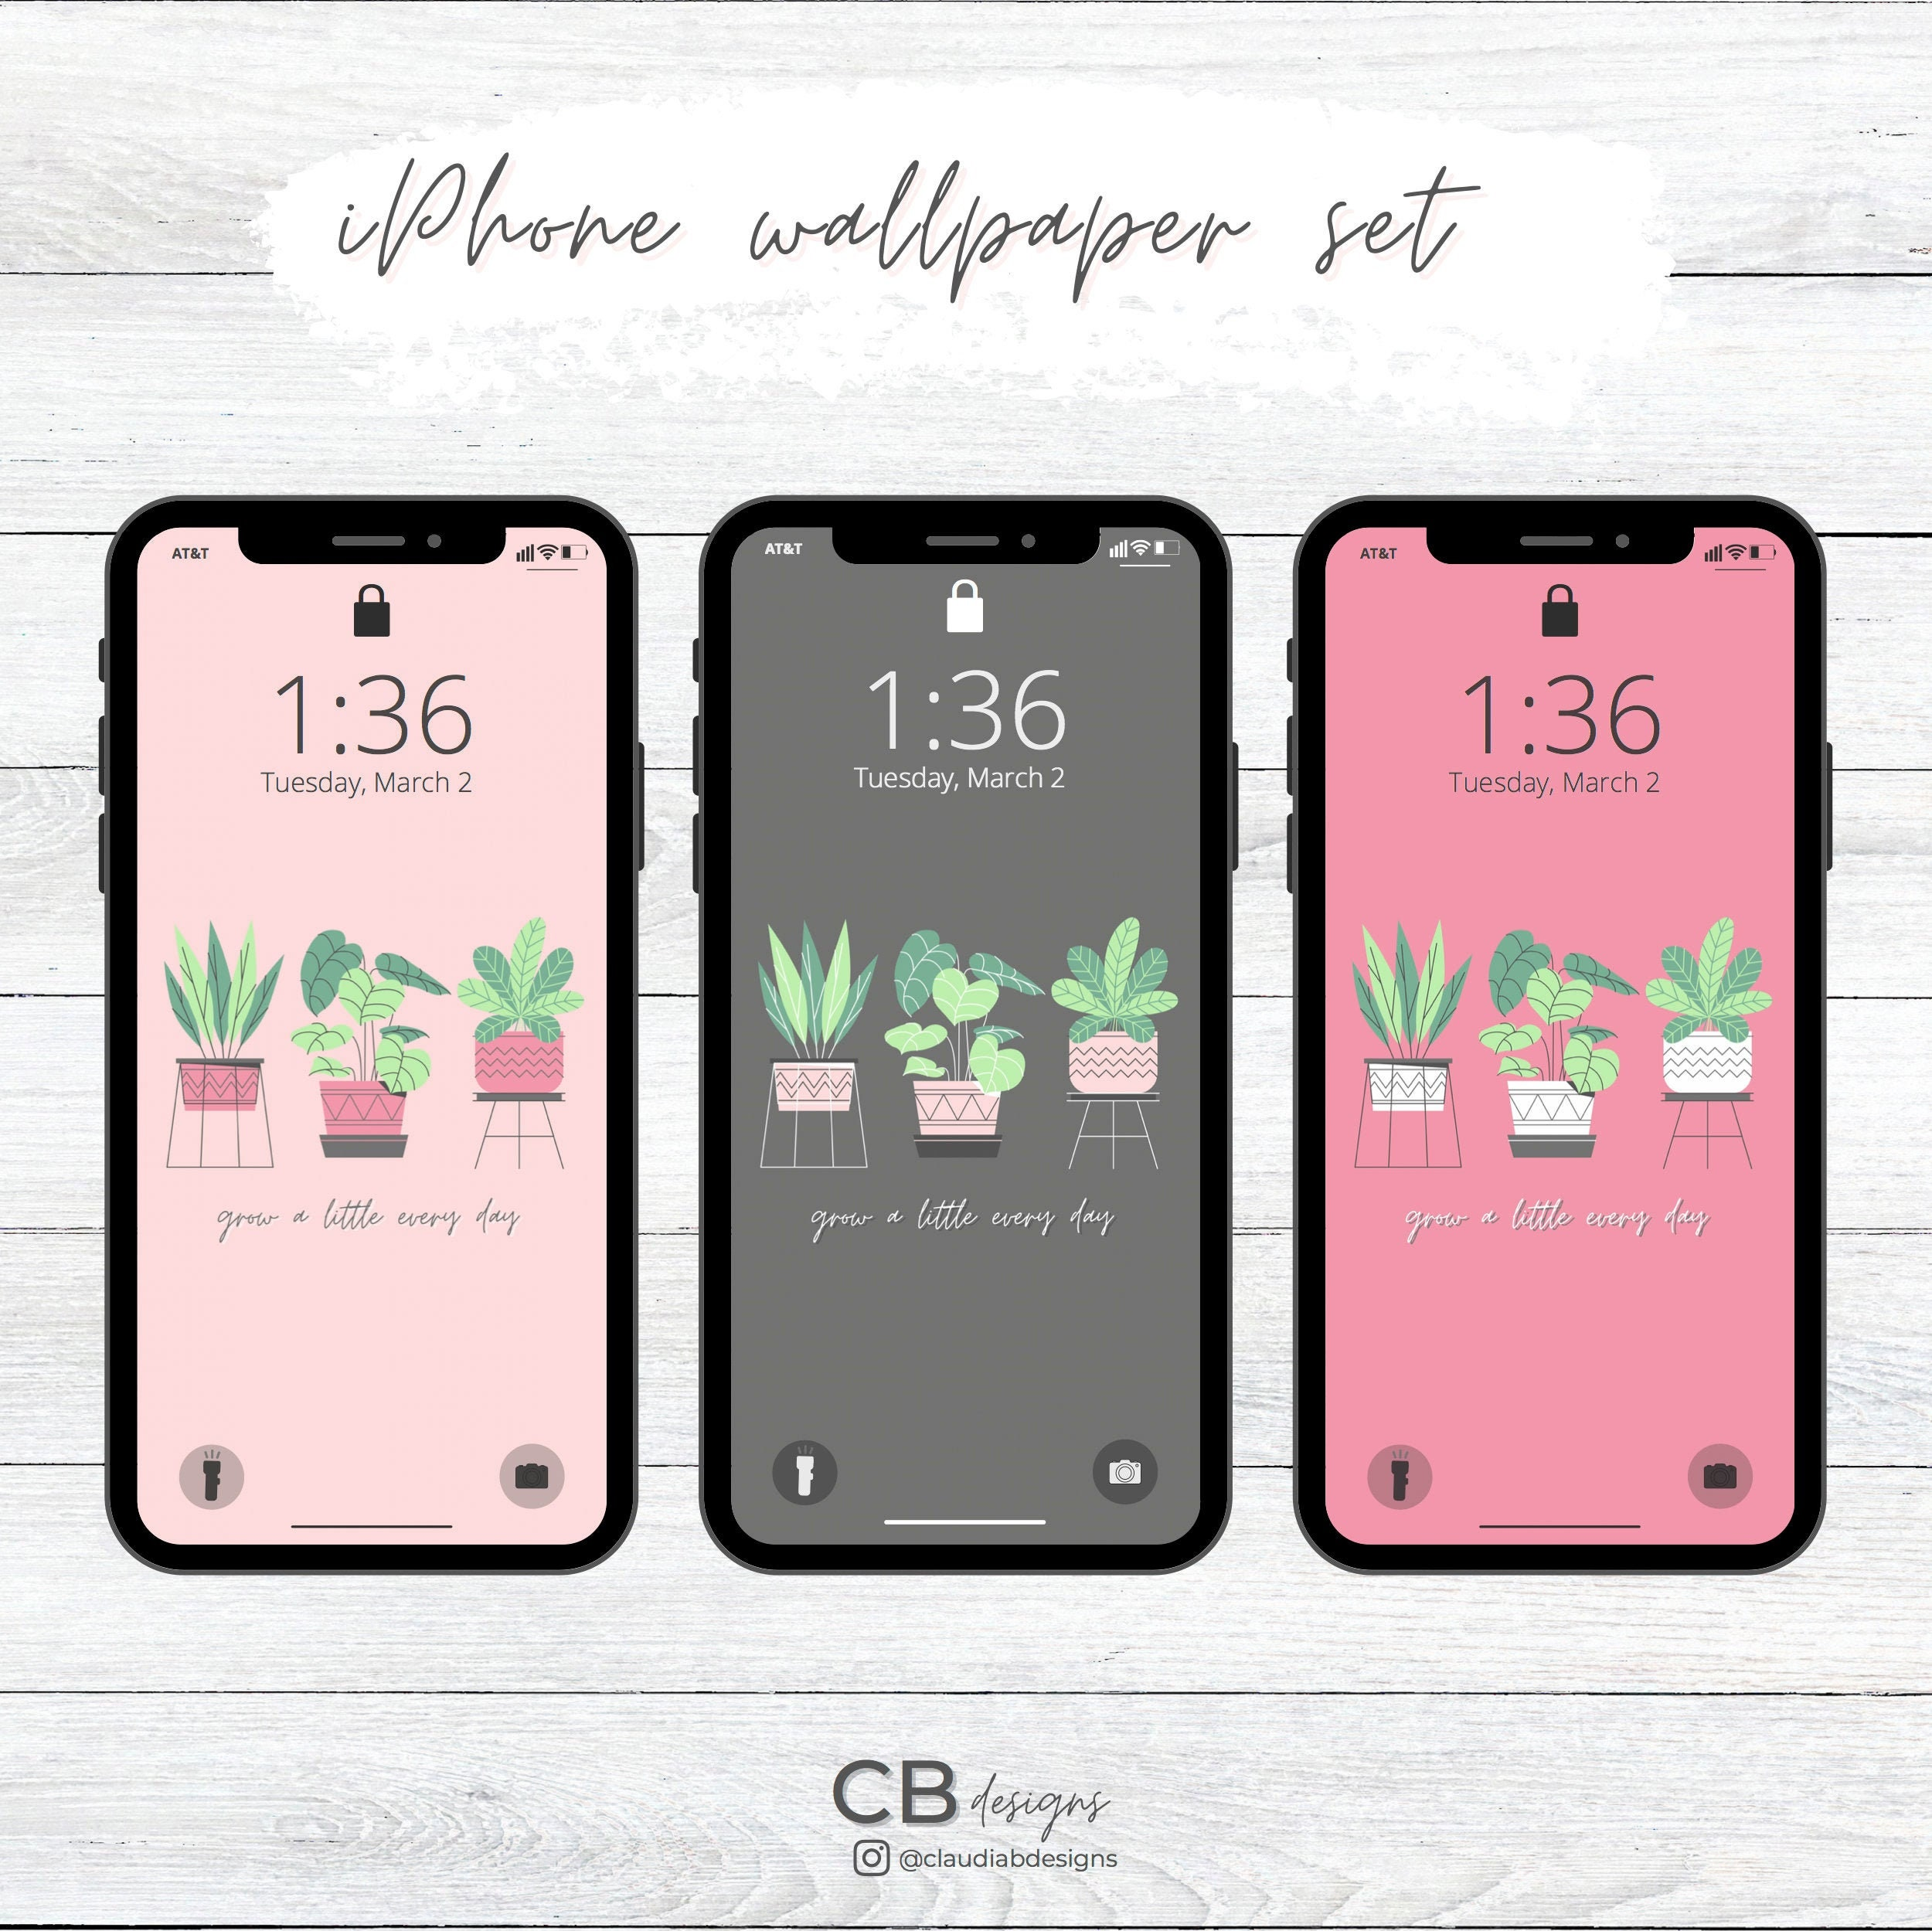 iPhone XS Max, iPhone 211 Pro Max, iPhone Max size wallpaper, Plants Phone  Wallpaper set SIZE 21